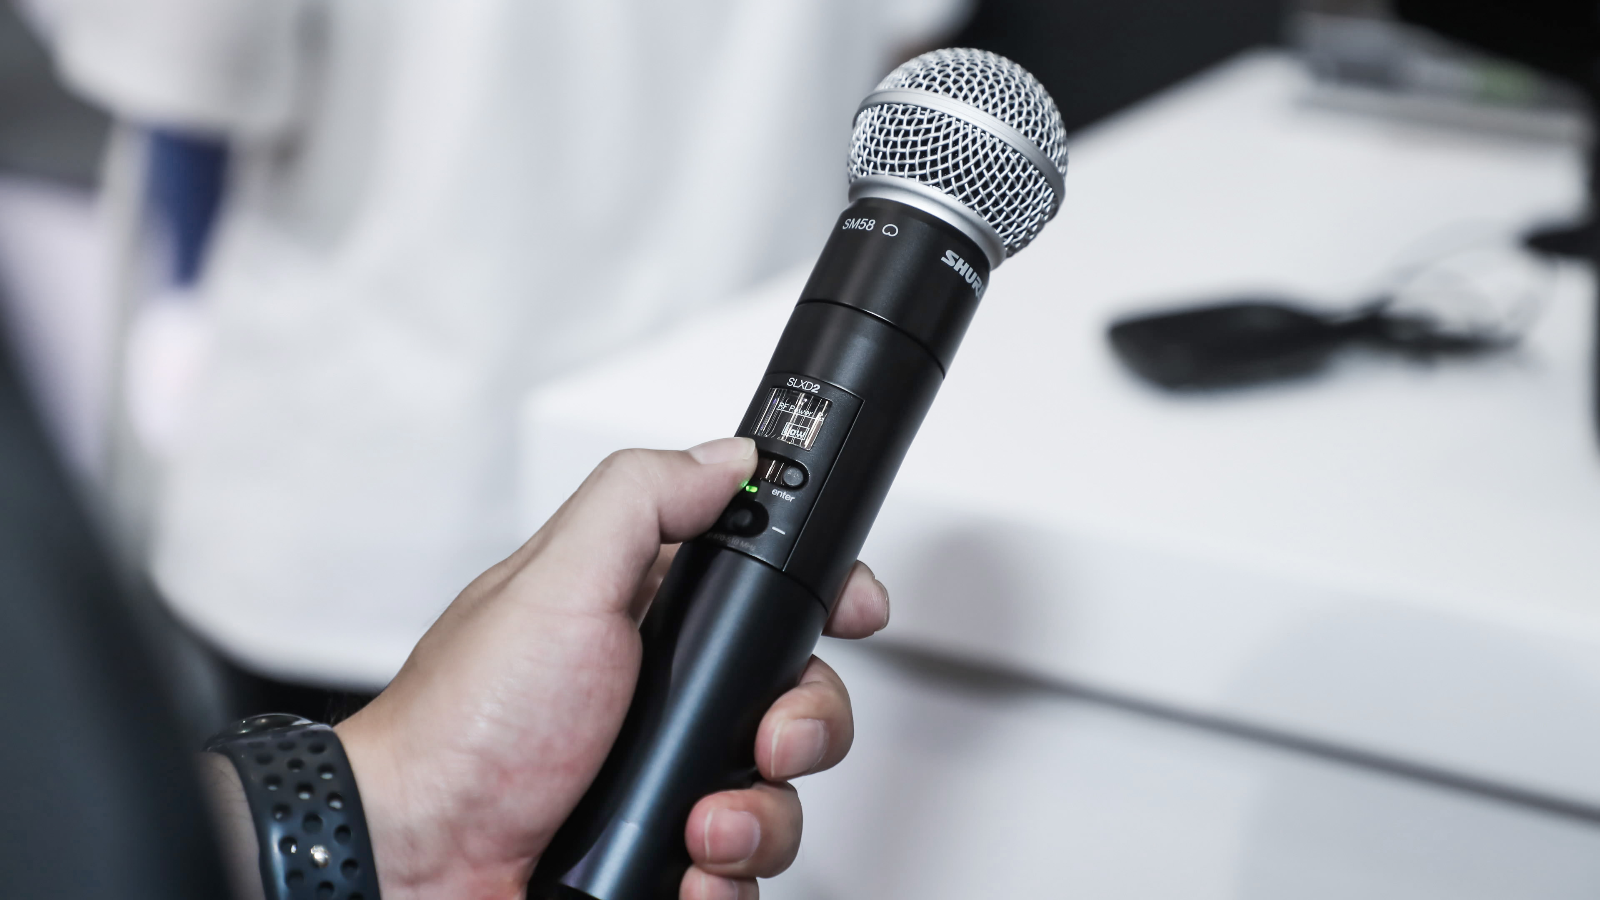 person holding SLXD2 wireless microphone